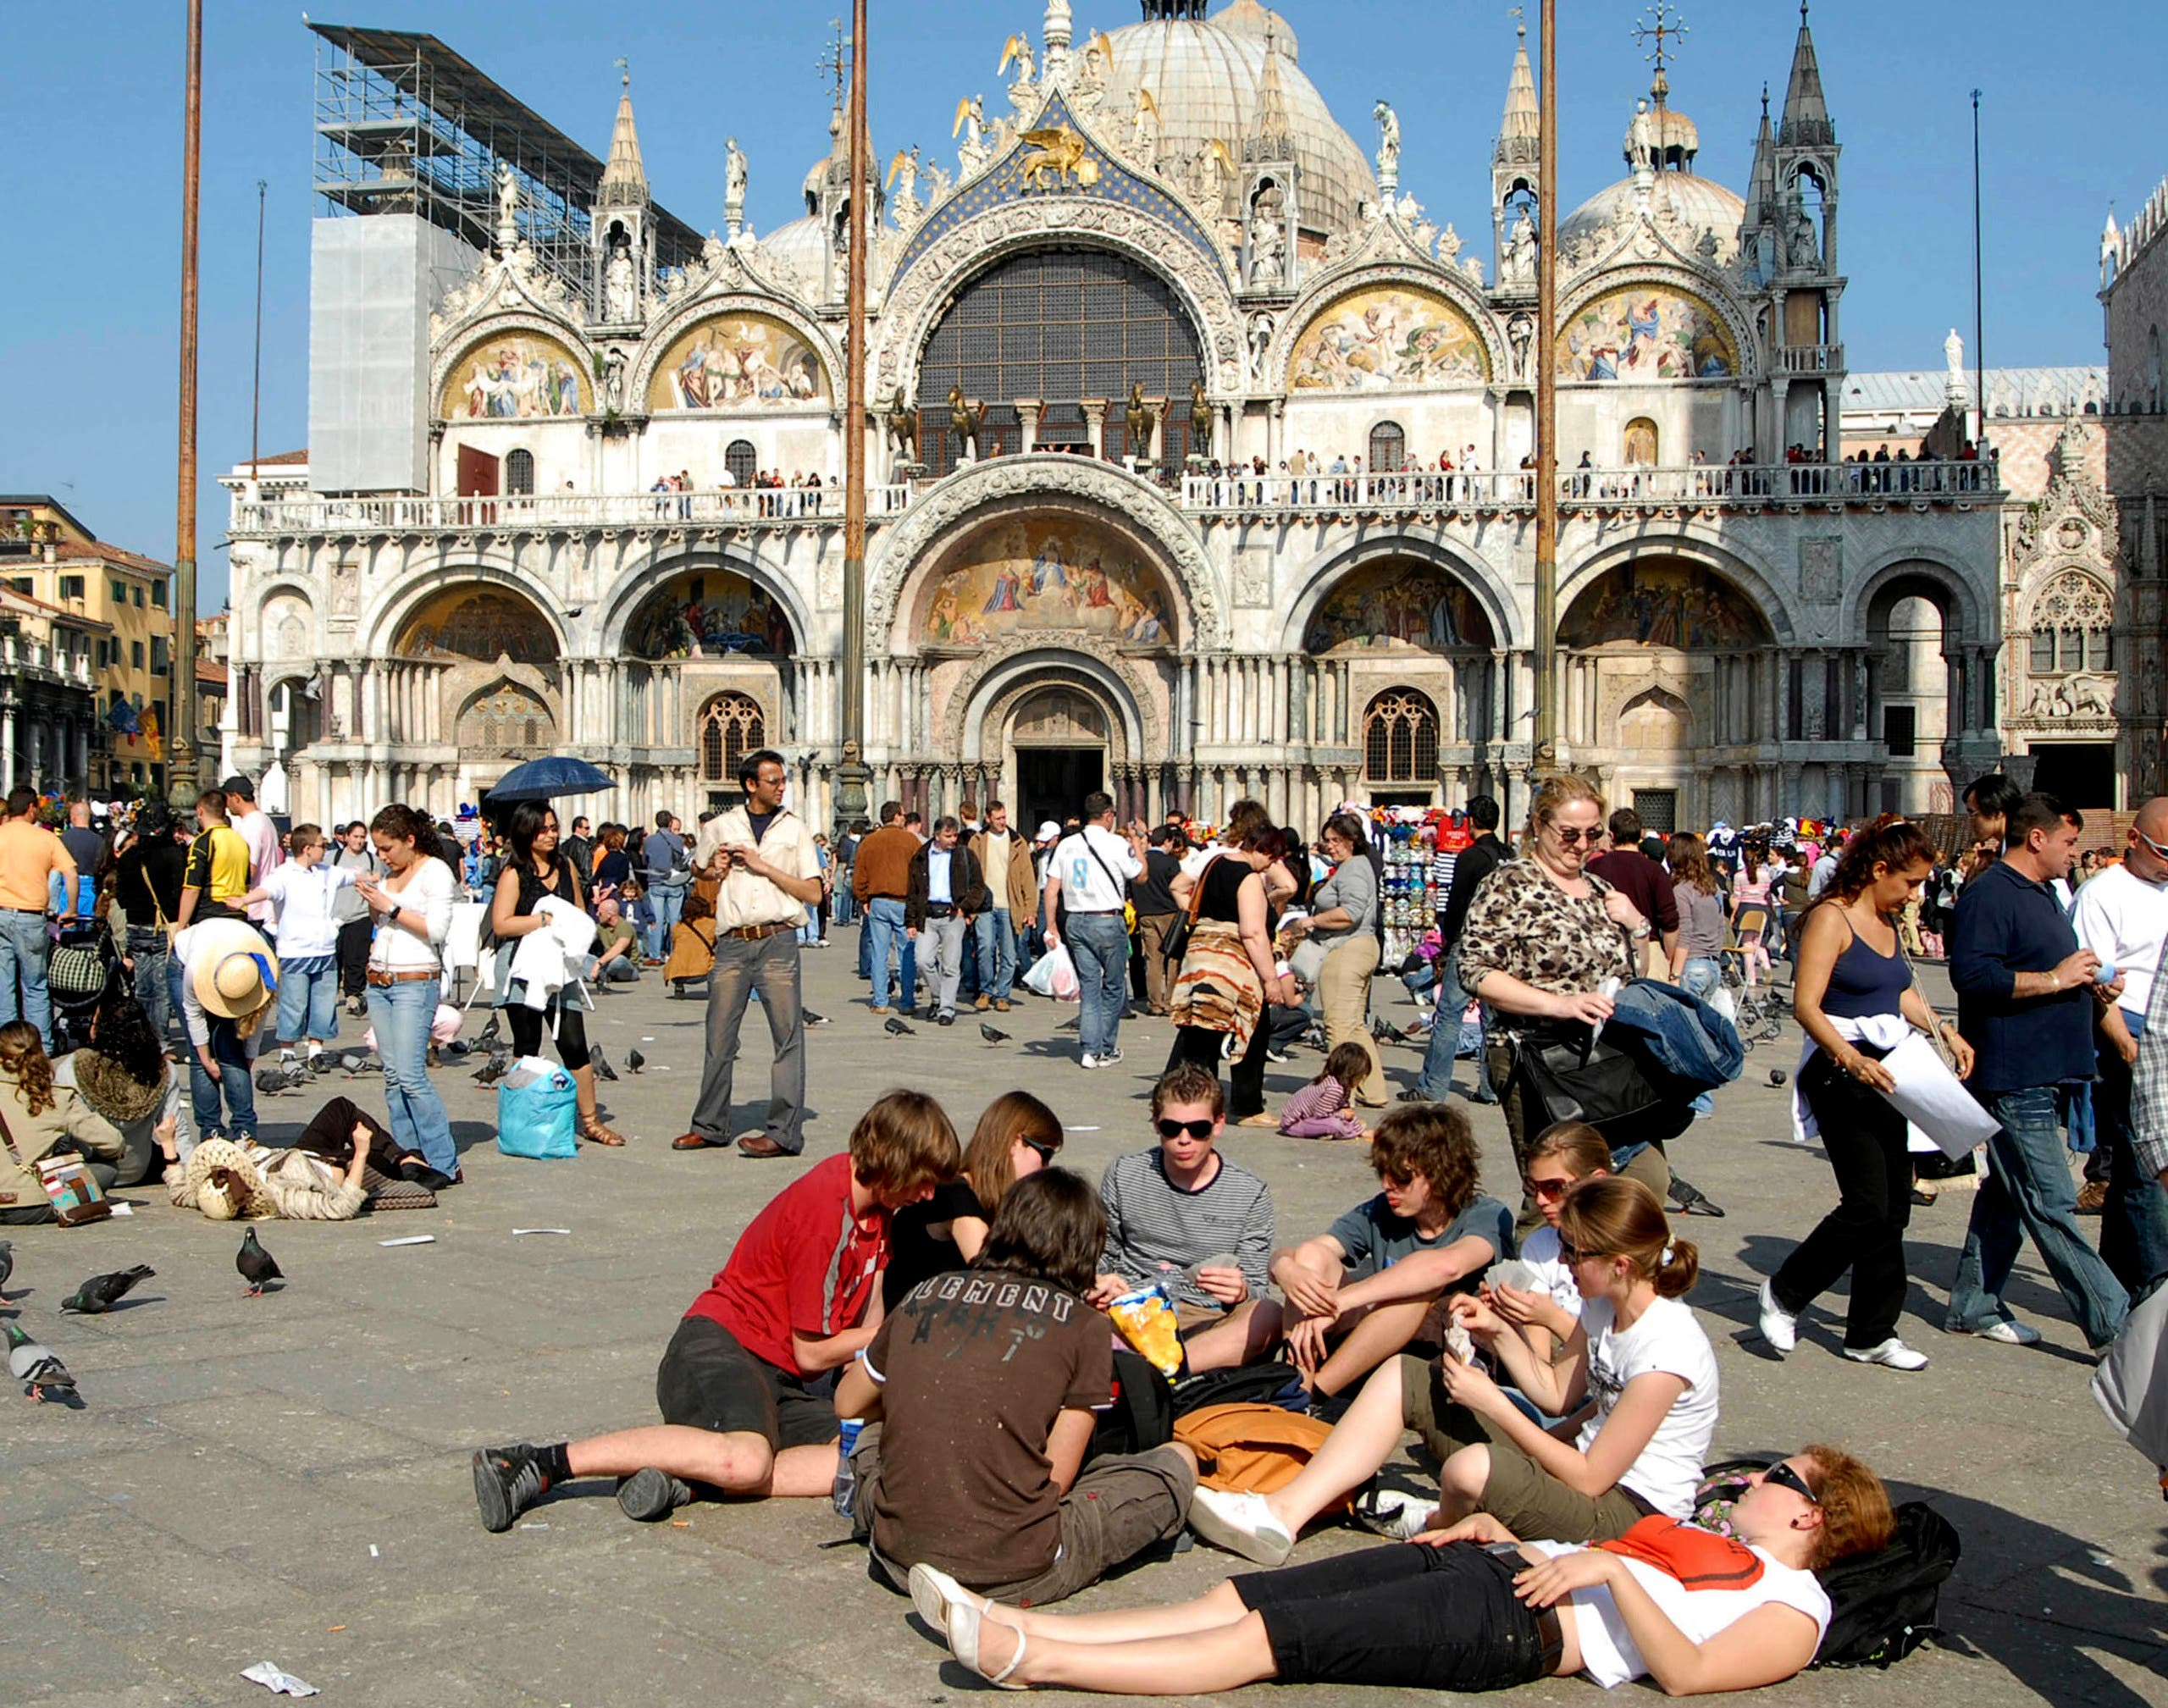 Tourists enjoy the sun in a crowded St.Mark's Square, in Venice, northern Italy, with St. Mark's Basilica in the background, in this May 1, 2007 photo. (AP)